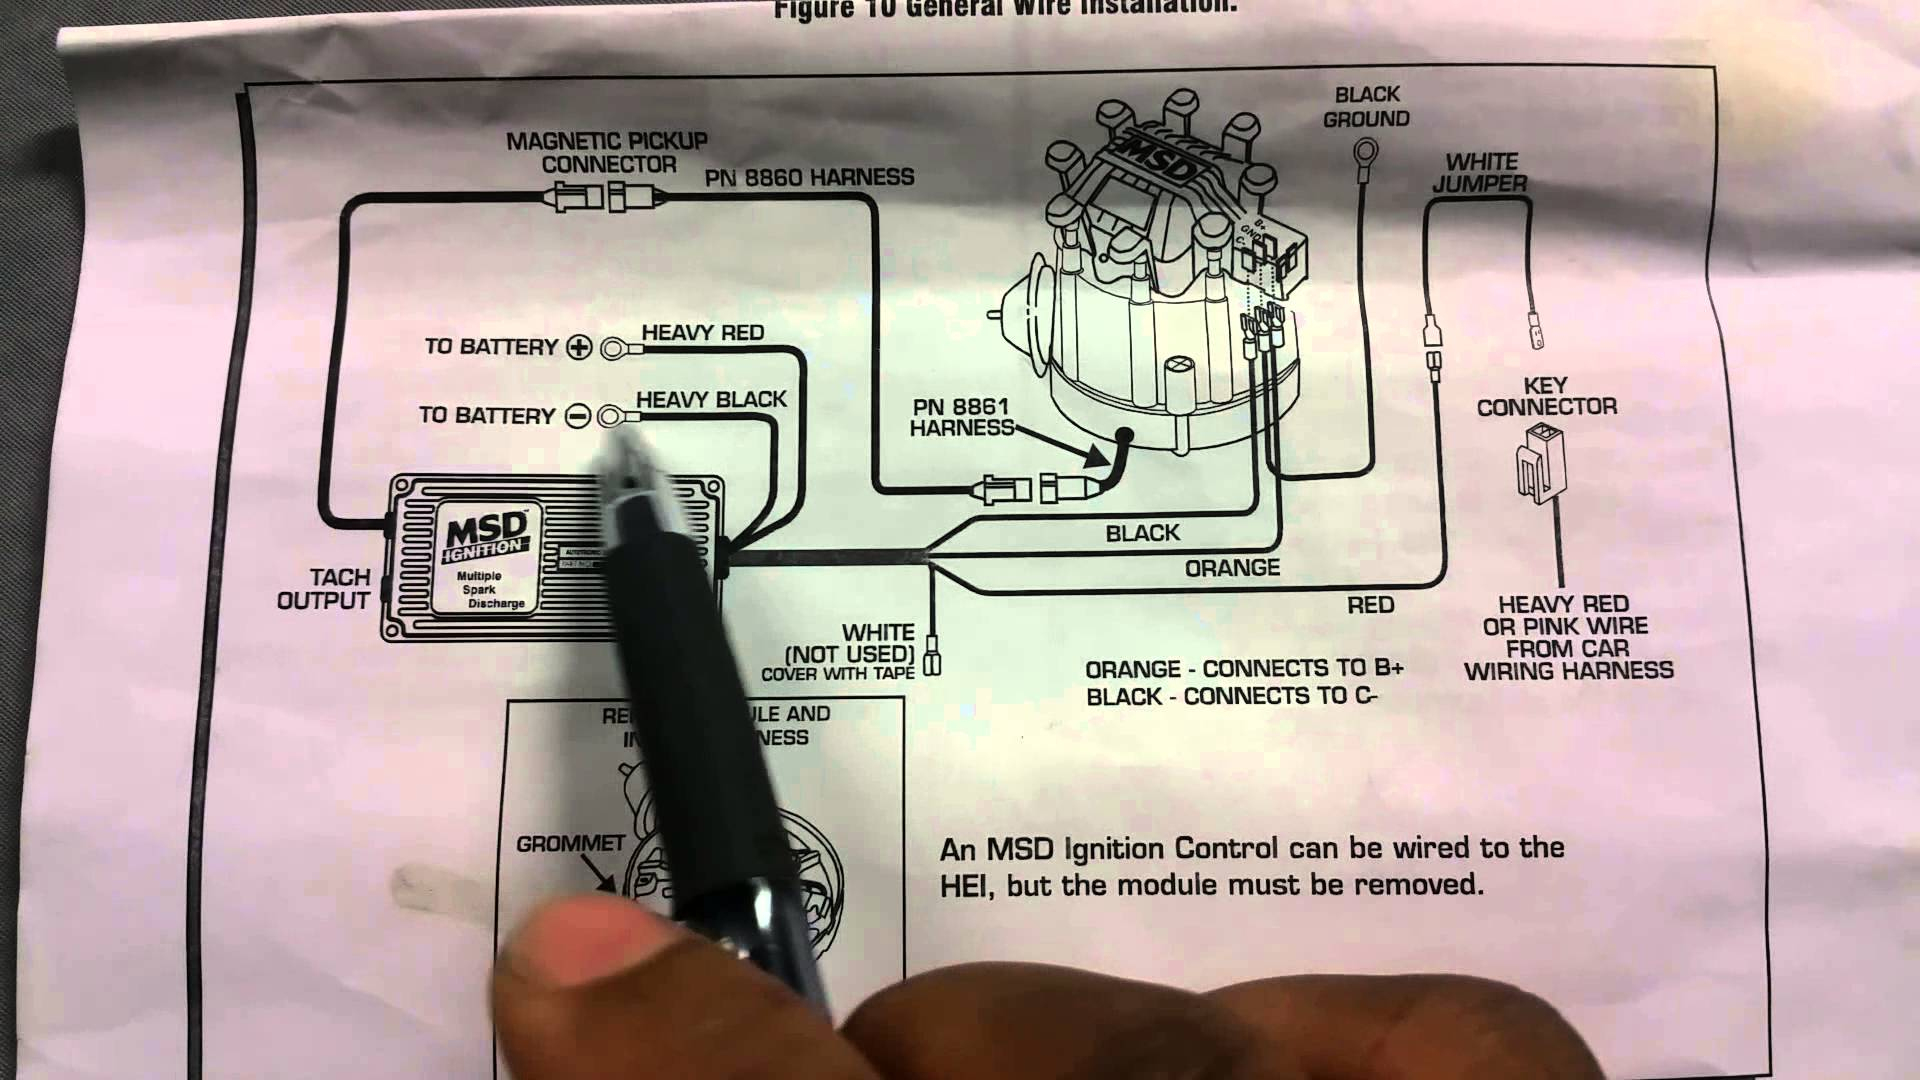 Msd Hei Wiring Diagram Diagrams Schematics Distributor Box Install - Hei Wiring Diagram